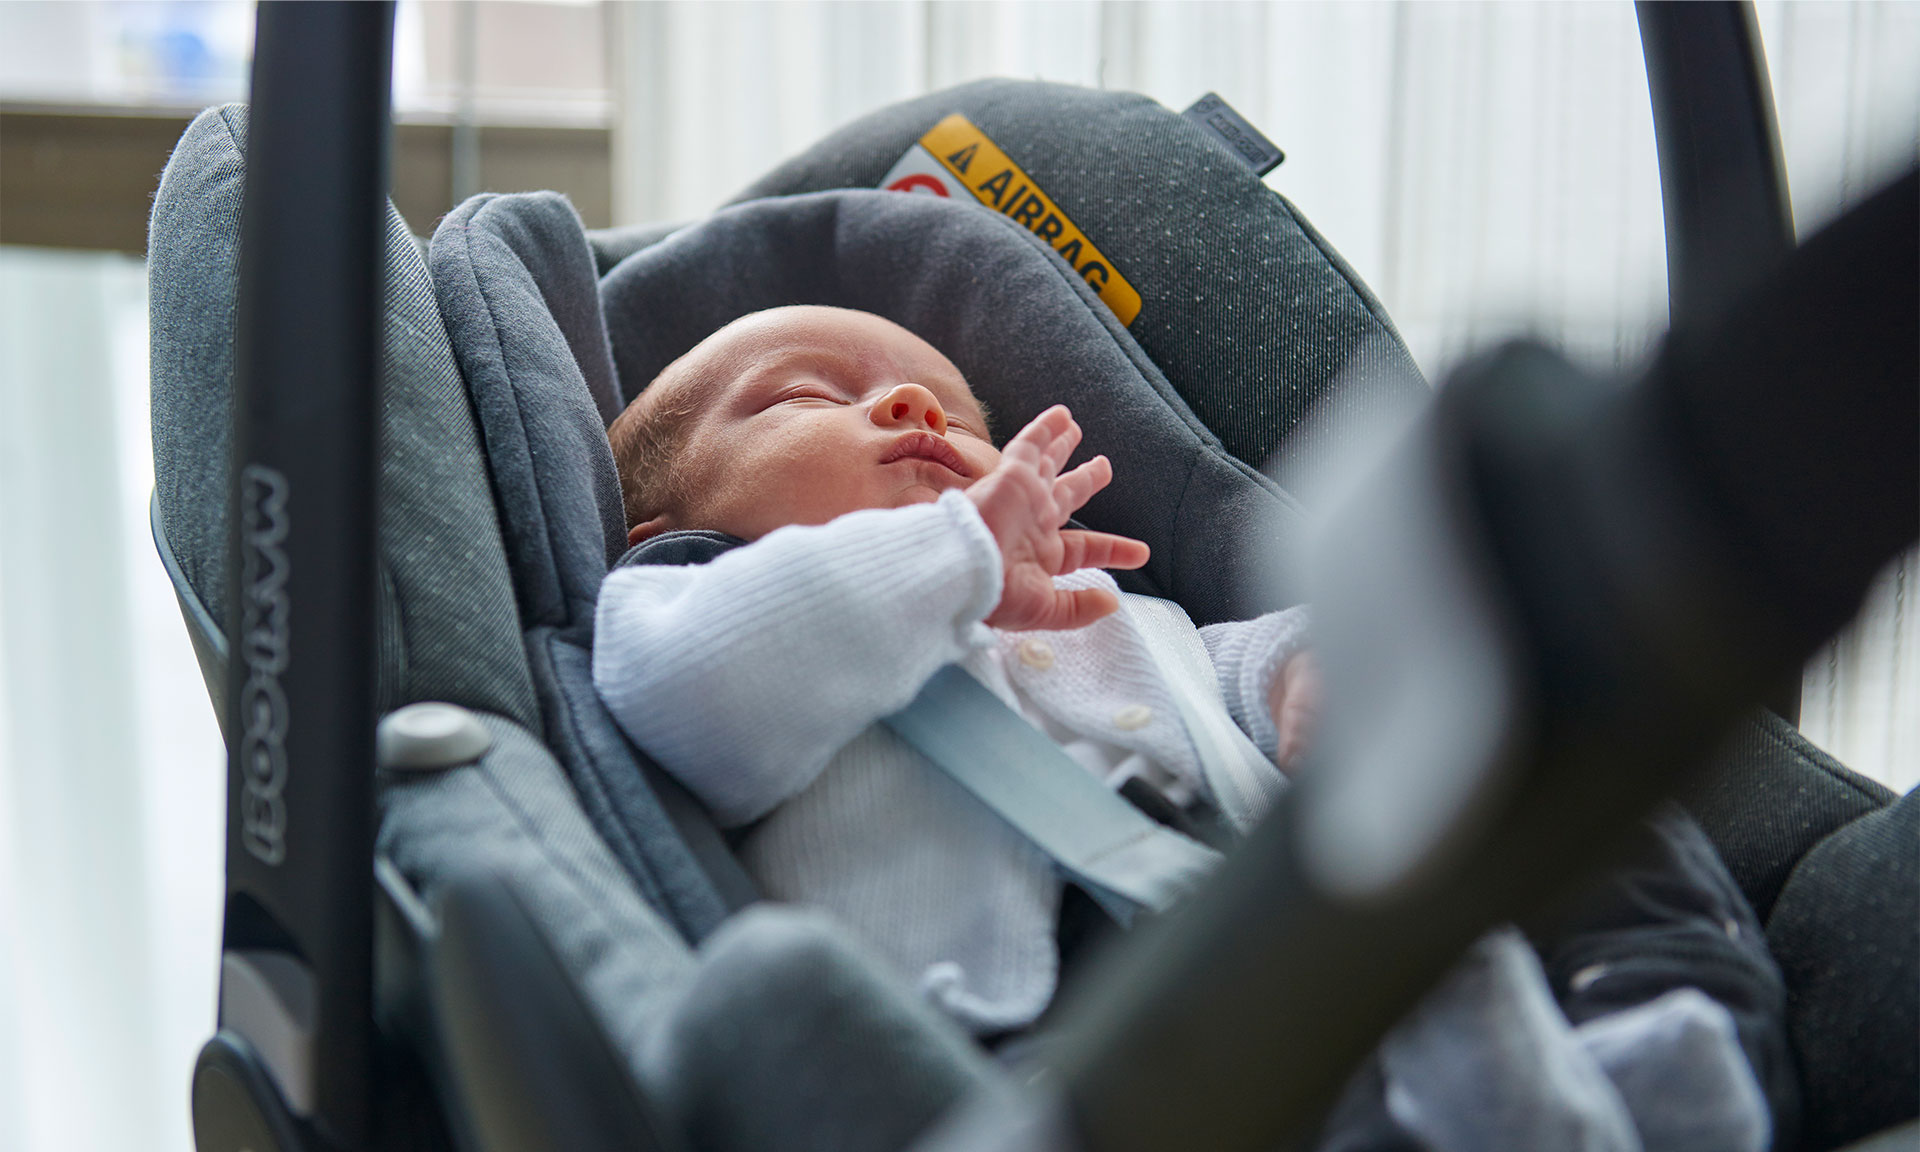 Maxi-Cosi car seats – how do they